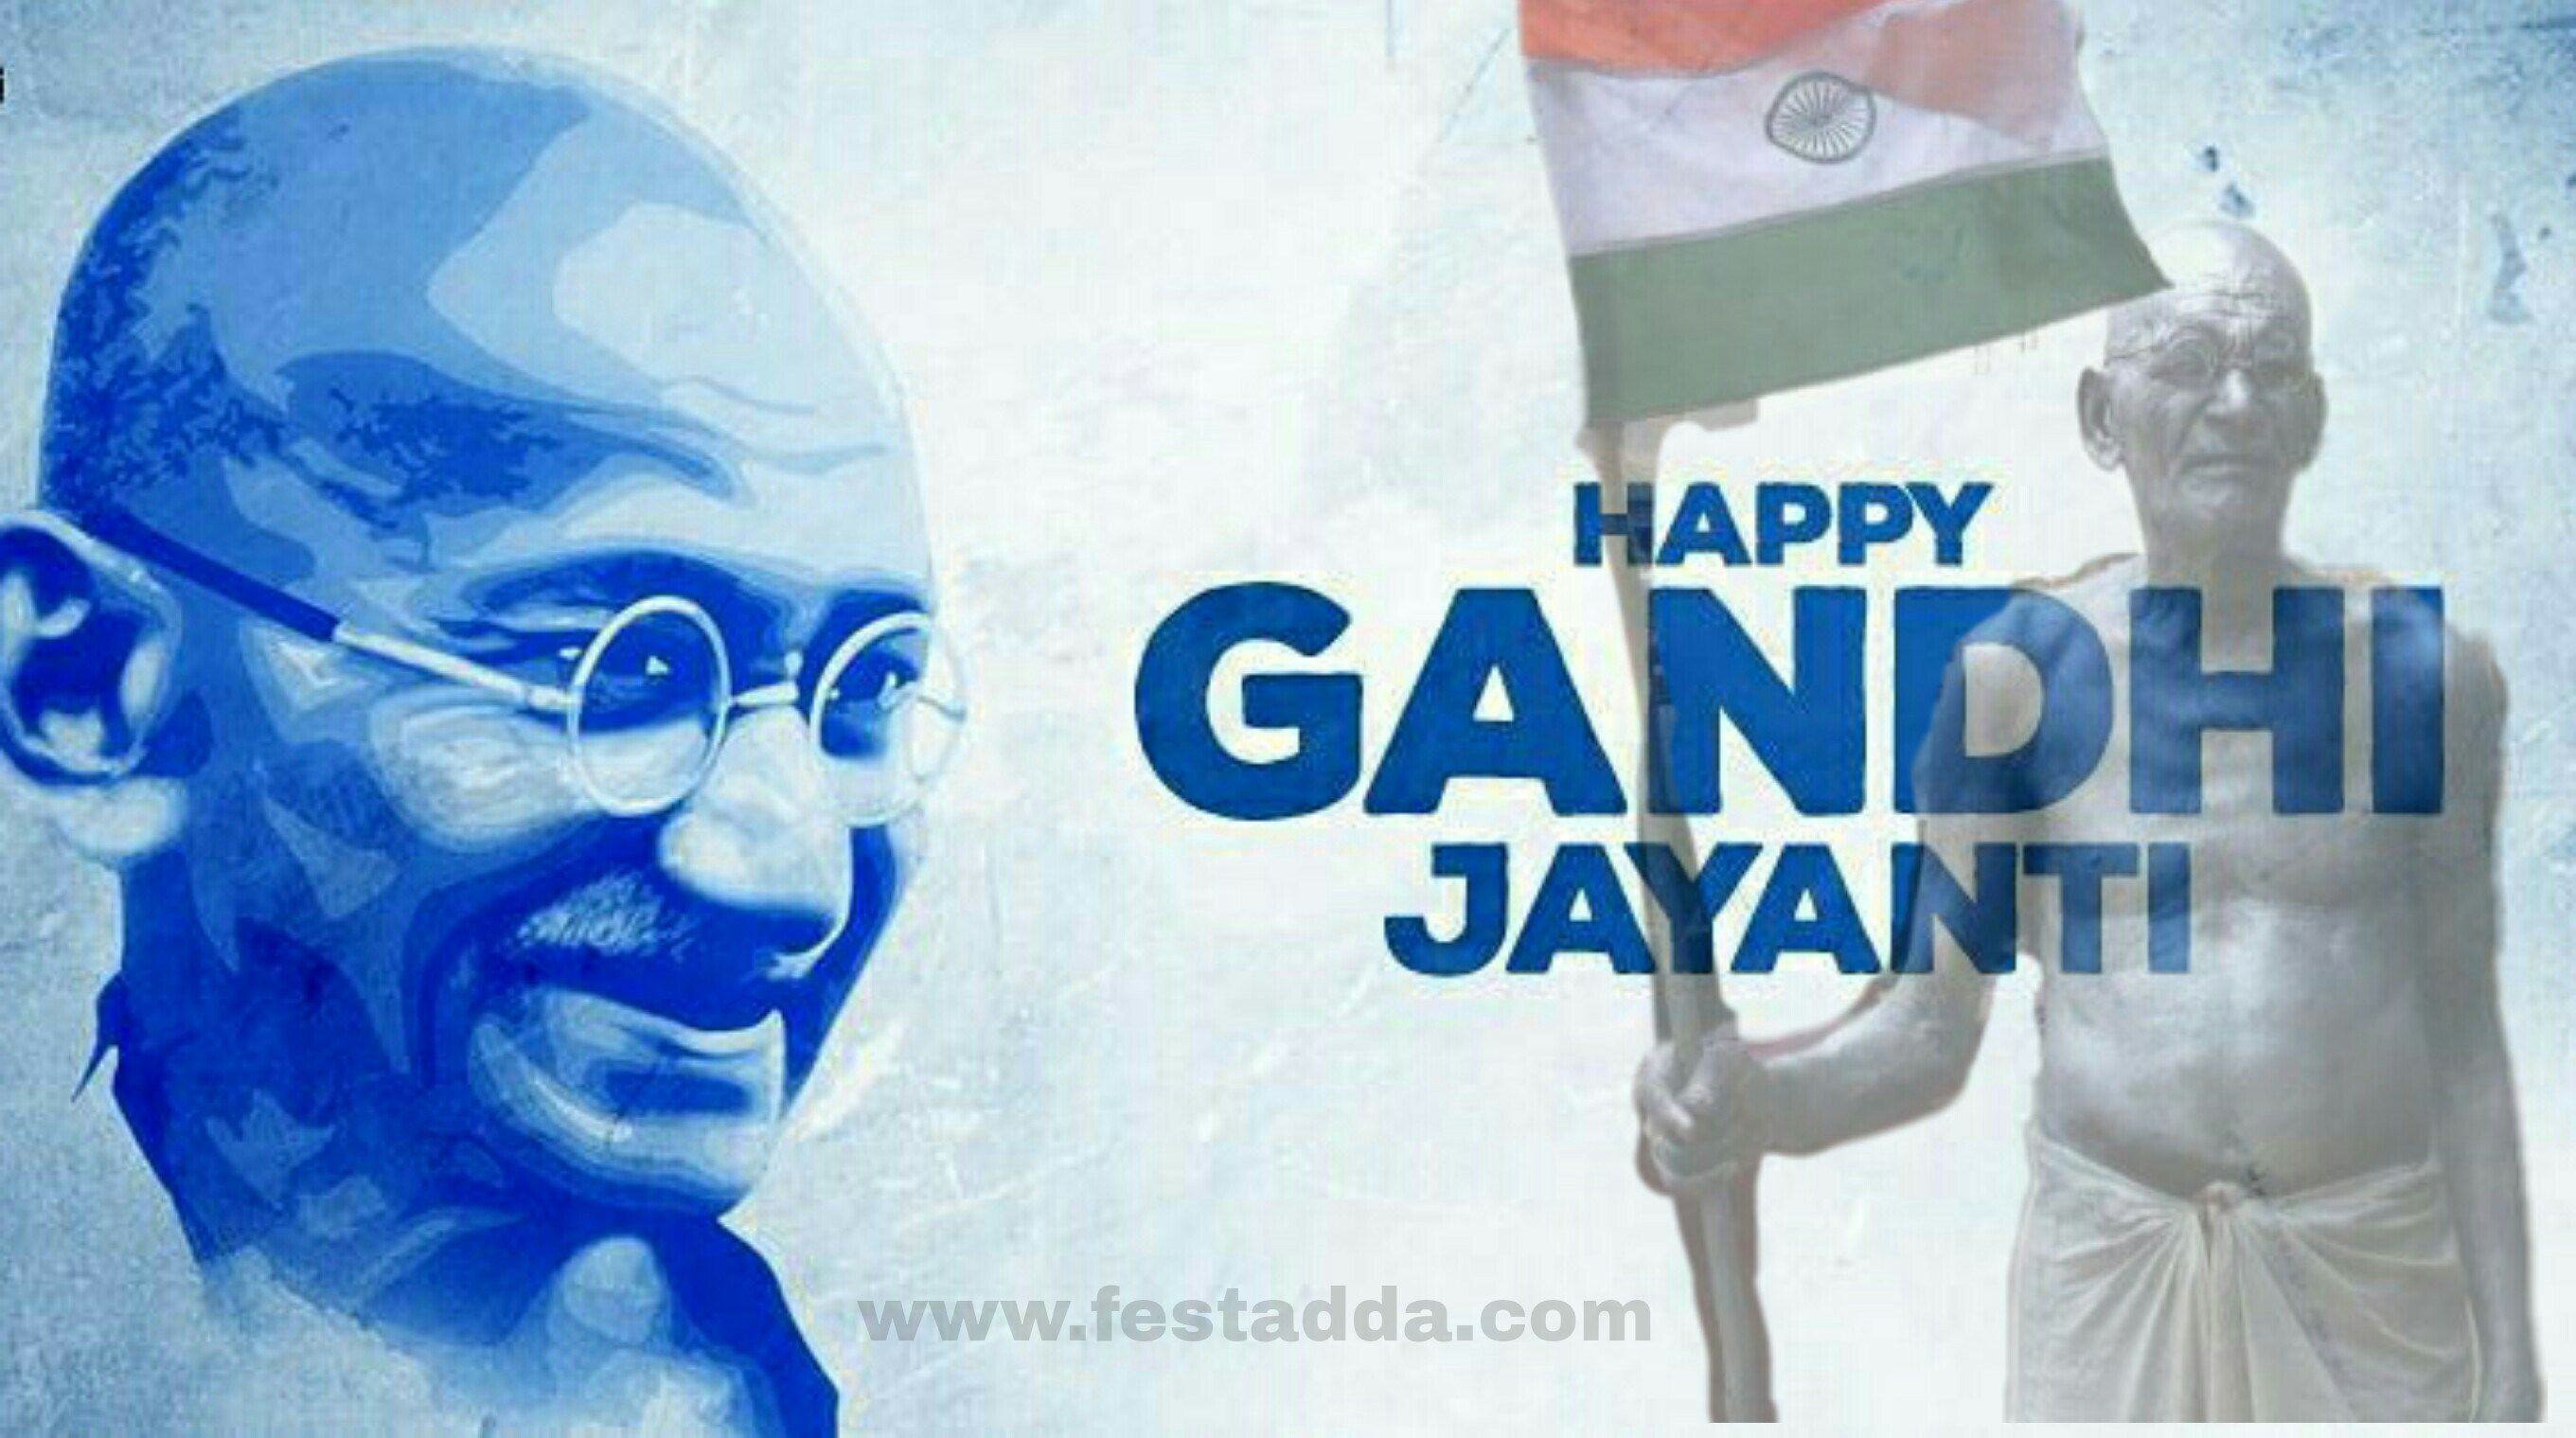 Download Mahatma Gandhi Gif Files For Whatsapp Status Videos Check Out In Online Gandhi Jayanti Gif Folders In Hindi English Mahatma Gandhi Gandhi Gif Files